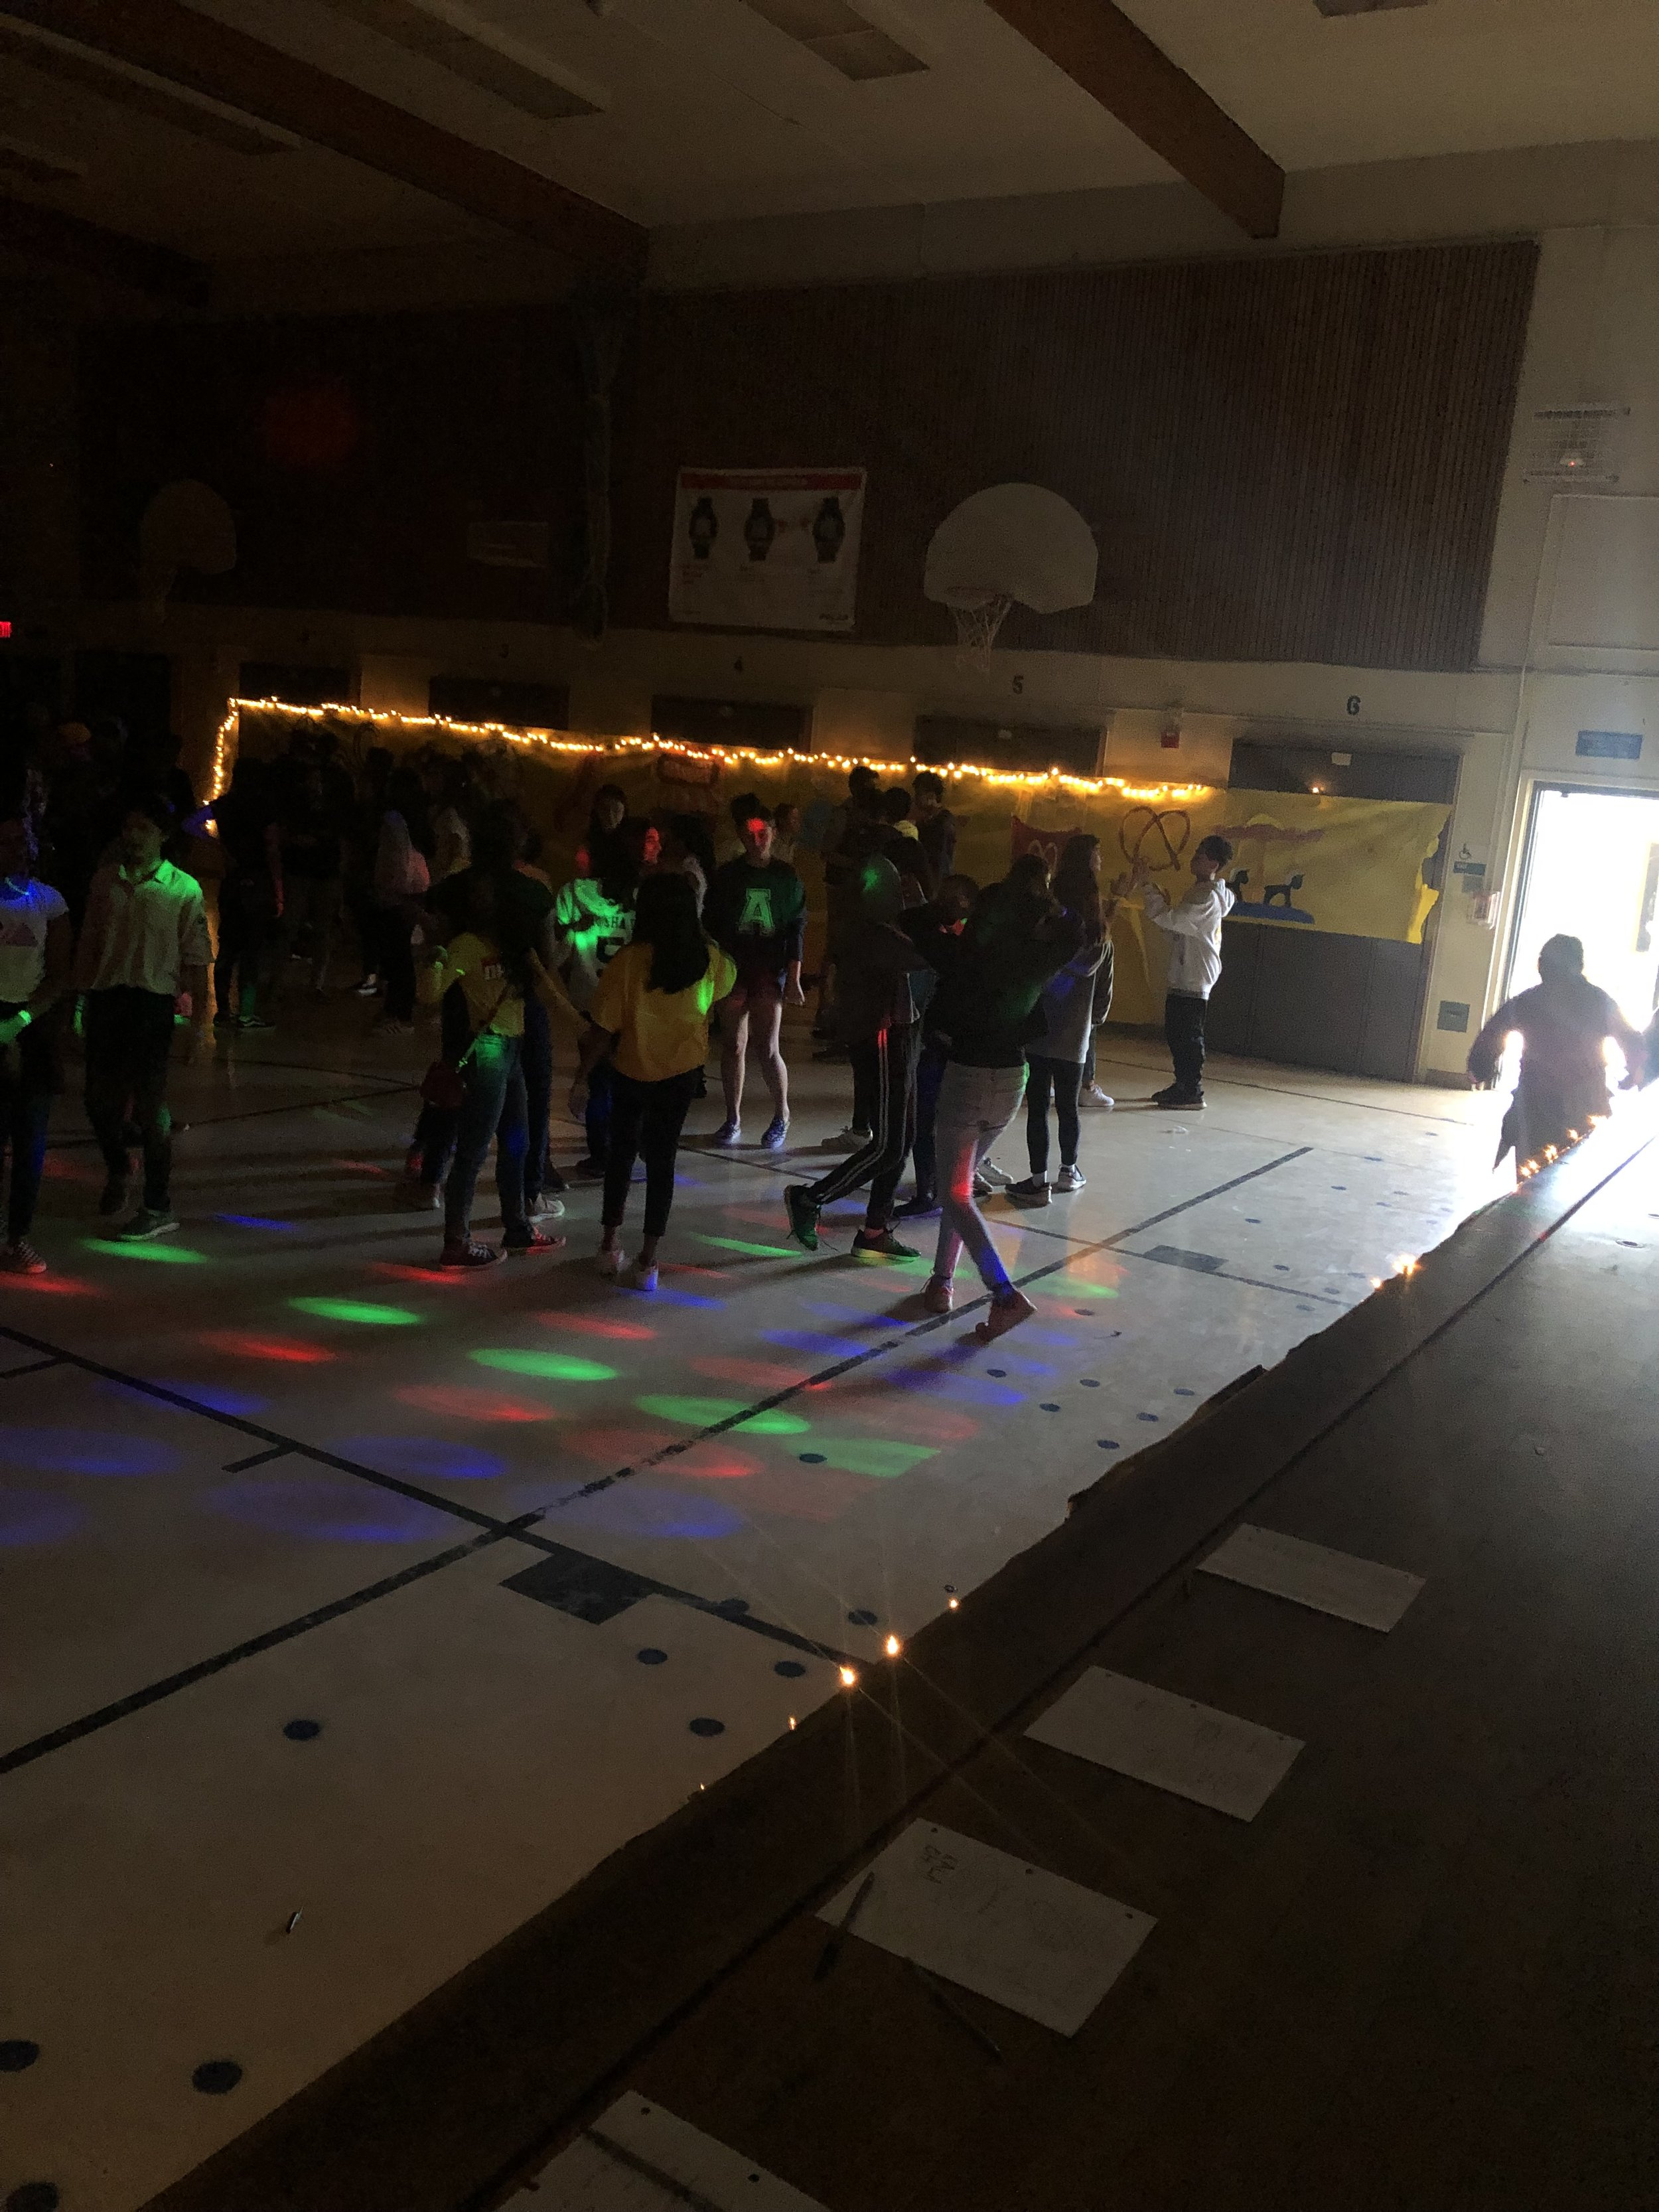 Horner Students love to dance, especially when the DJ plays their requests!